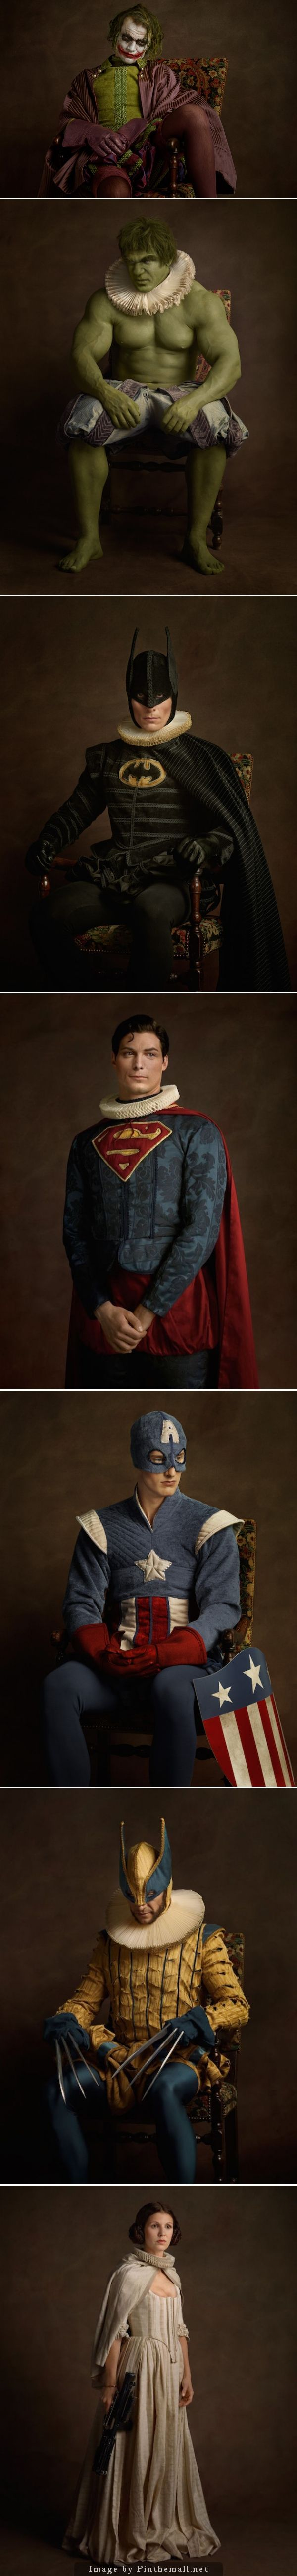 Superdupont is a superhero based entirely on french stereotypes - The Attention To Detail On These Are Incredible Photographer Sacha Goldberger